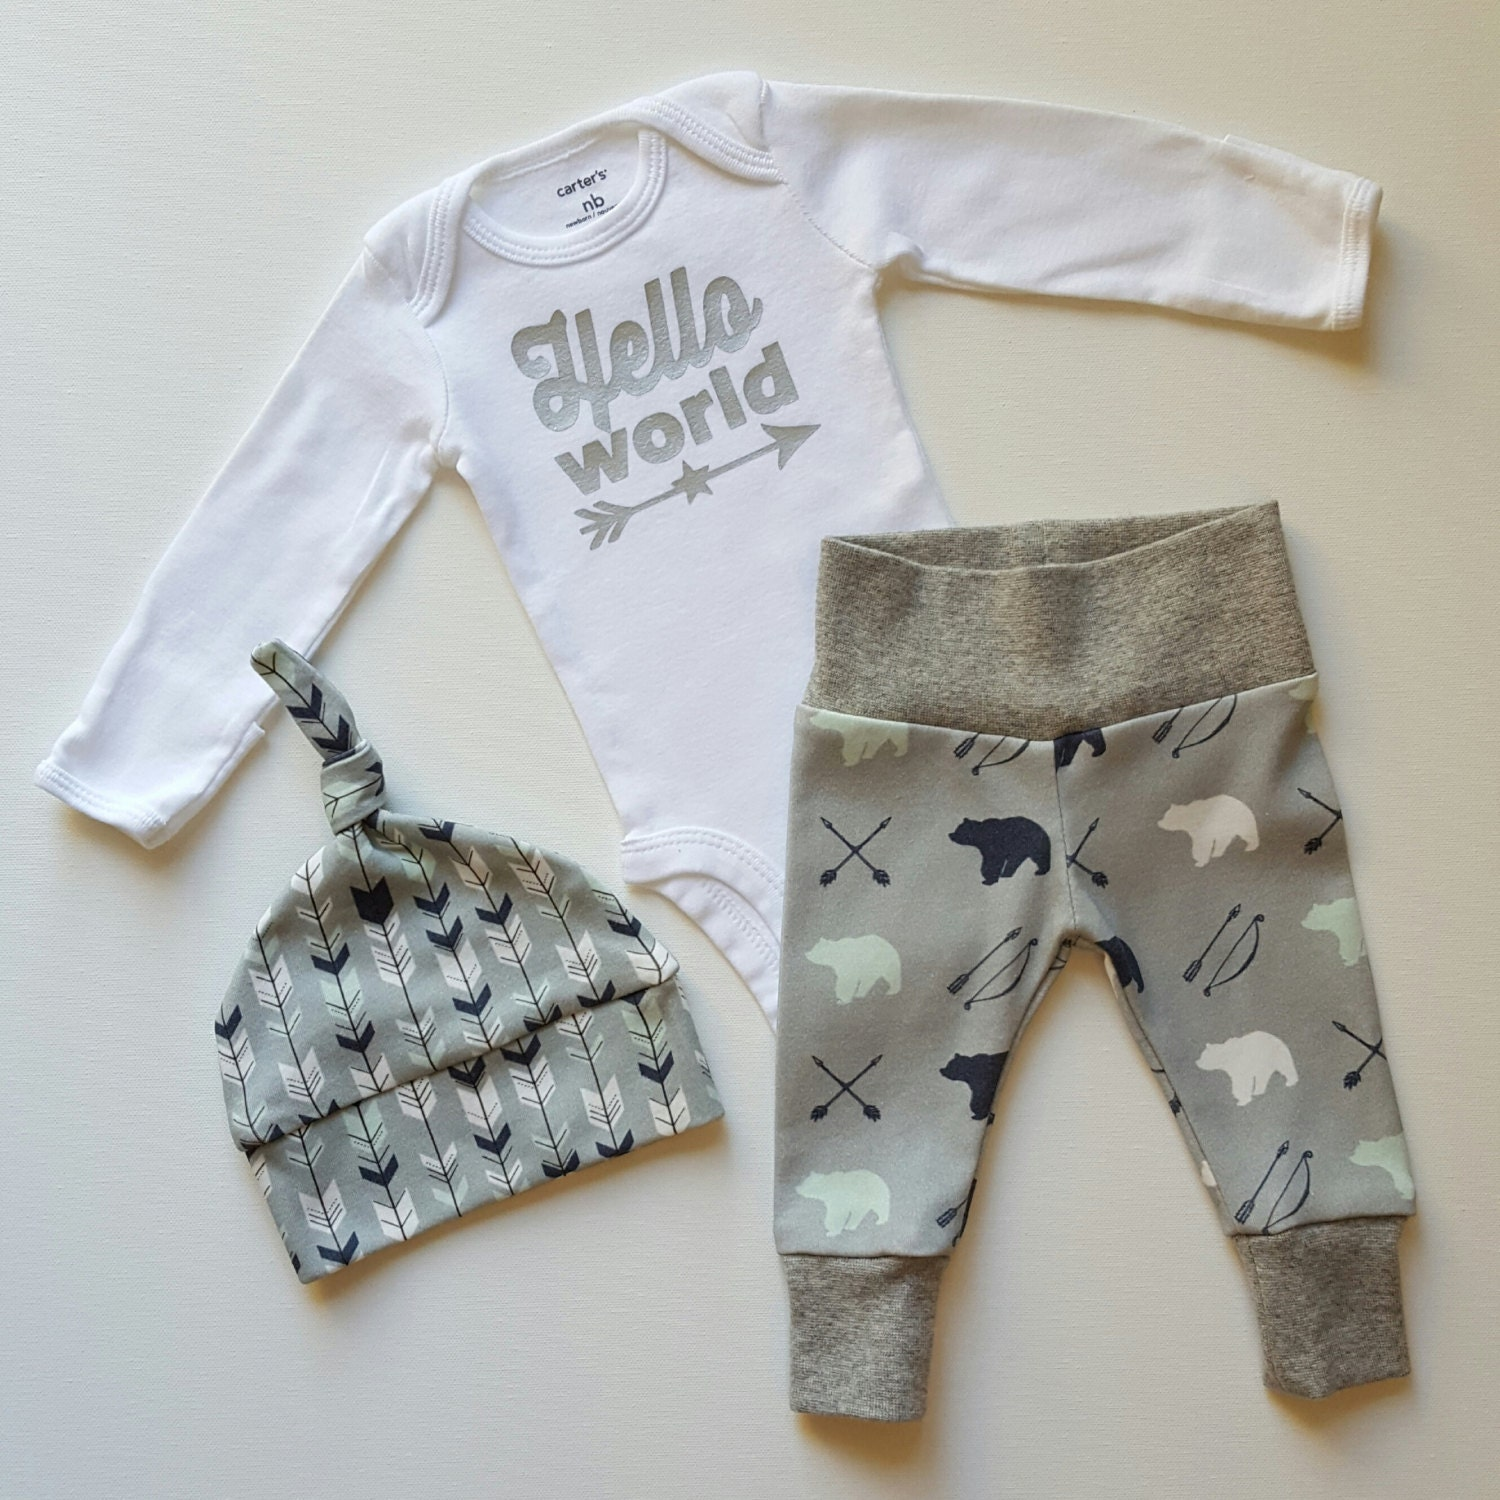 Product Info. Looking for something cuddly and cute to bring home baby boy in? This newborn take home set will do the trick! This listing includes.